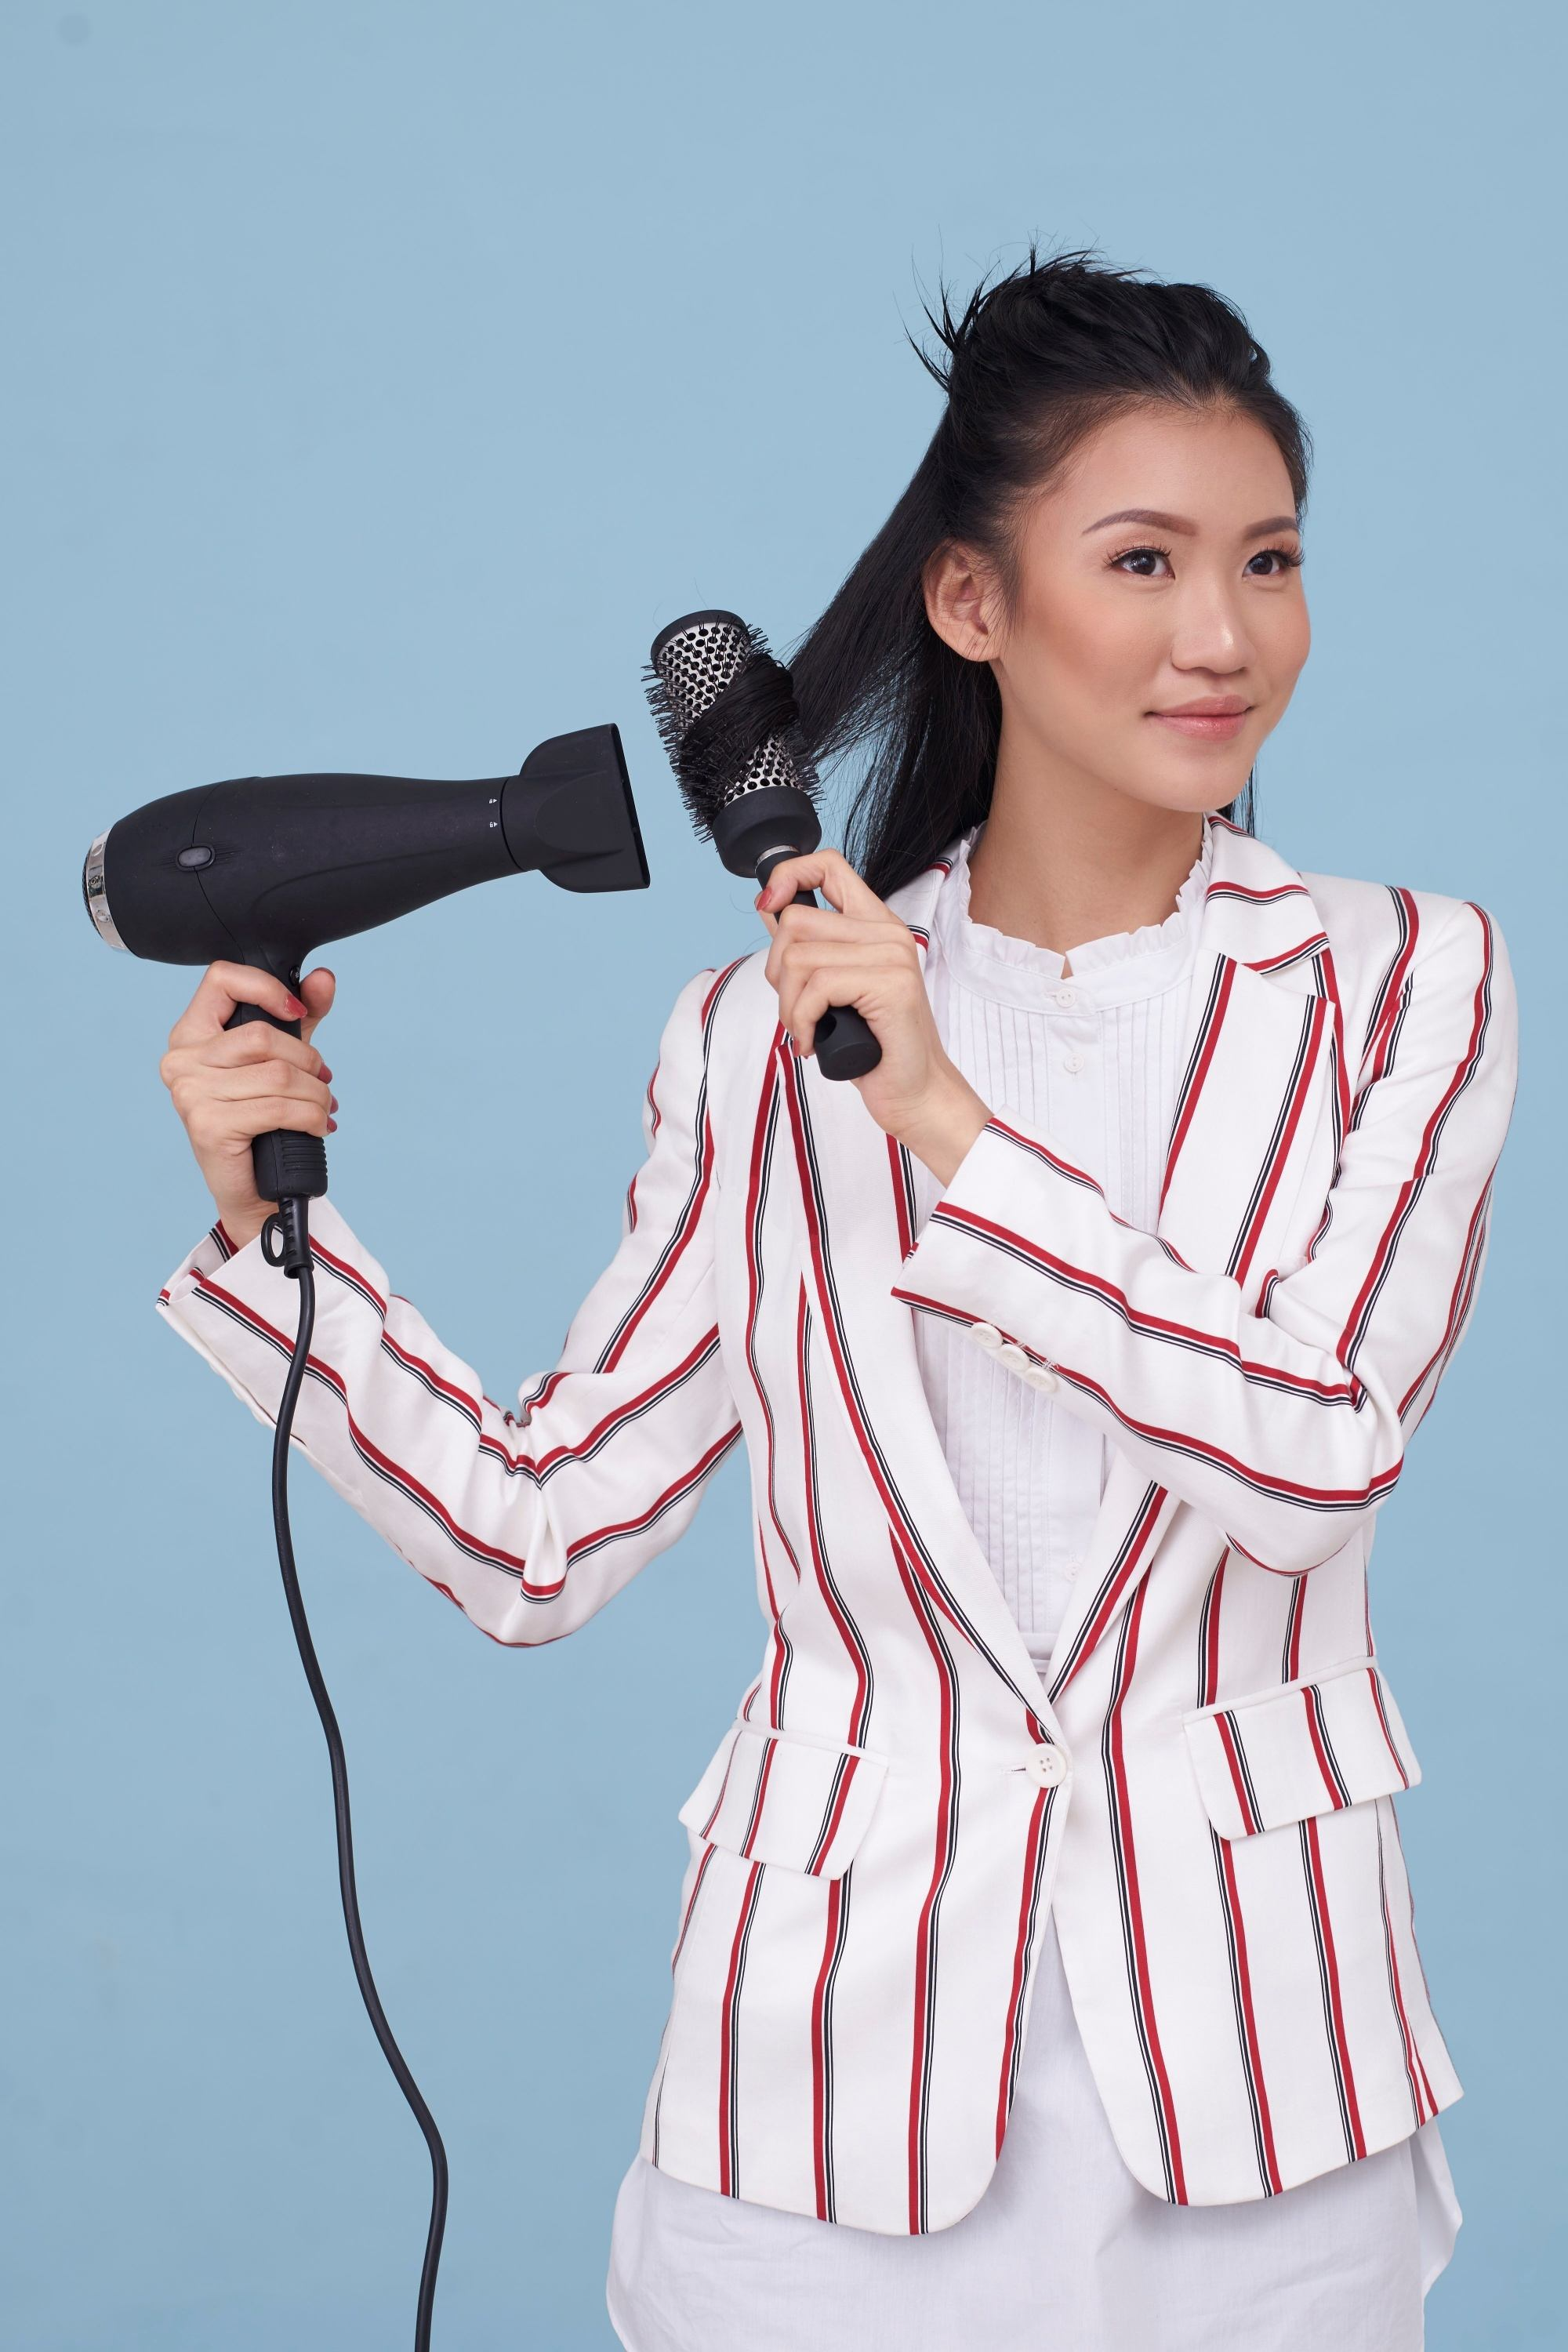 Asian woman wearing a striped blazer blow drying her hair to straighten it